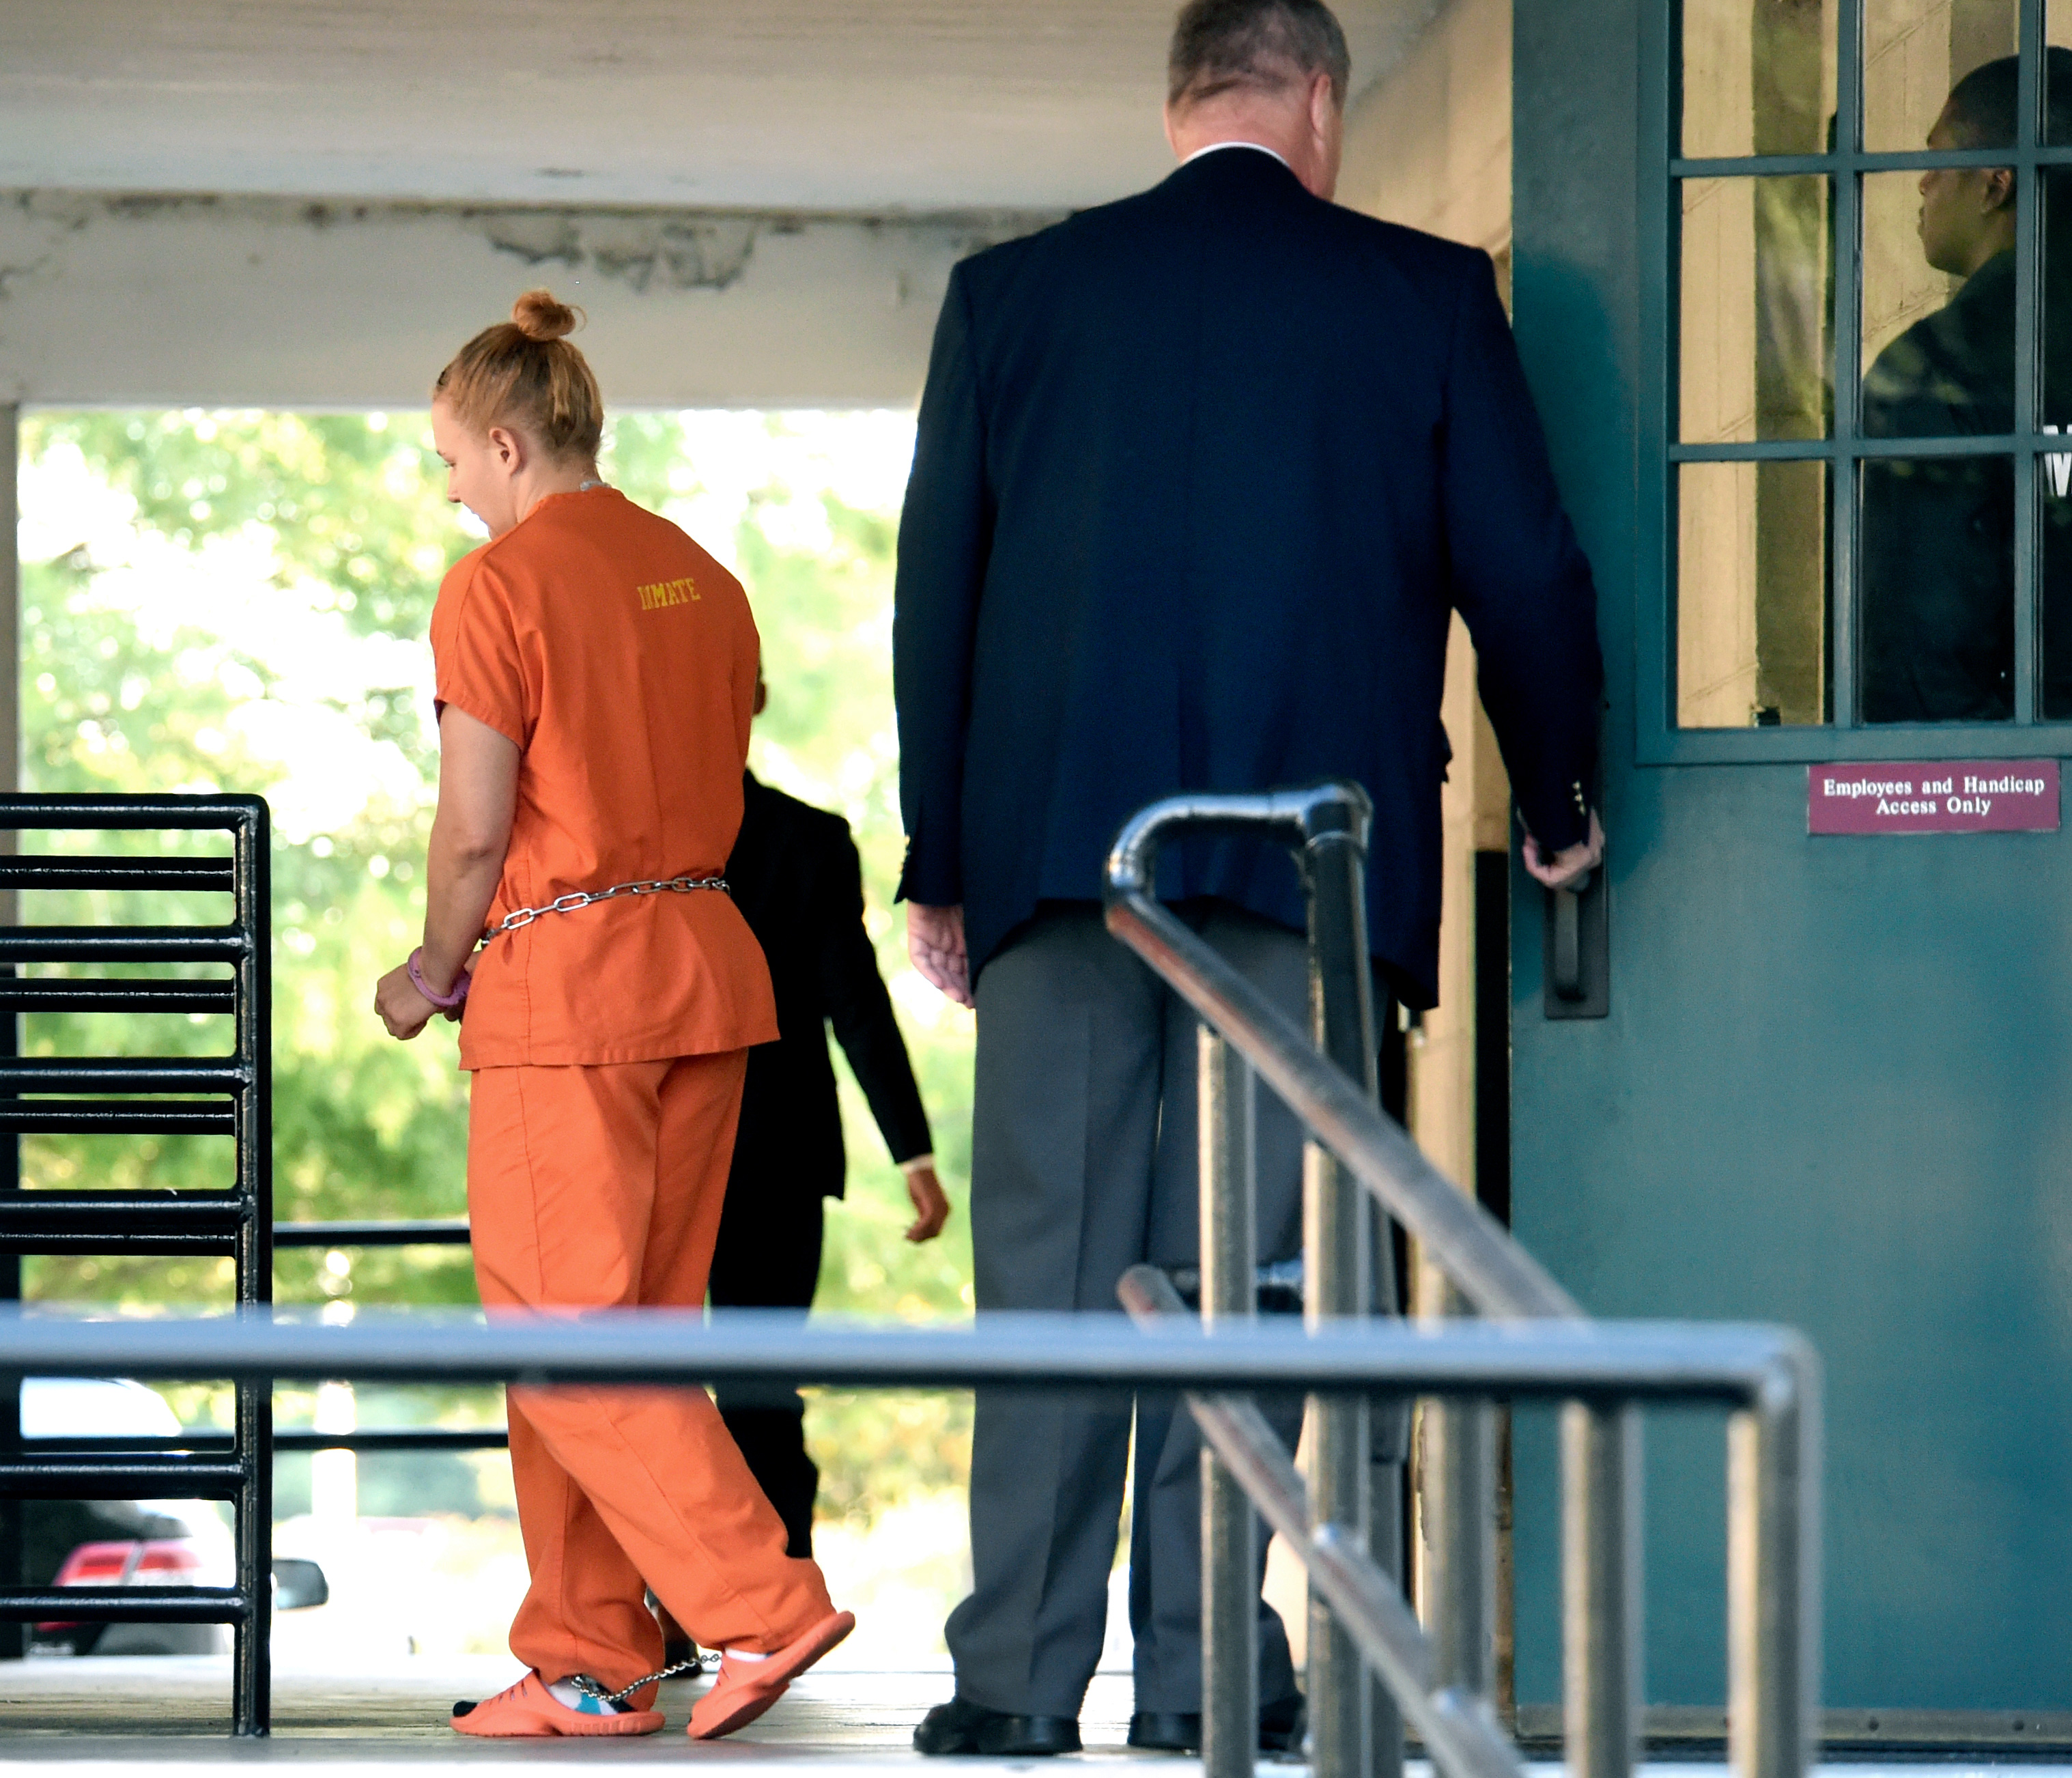 The Prosecution of Reality Winner Is Unfair, Unprecedented